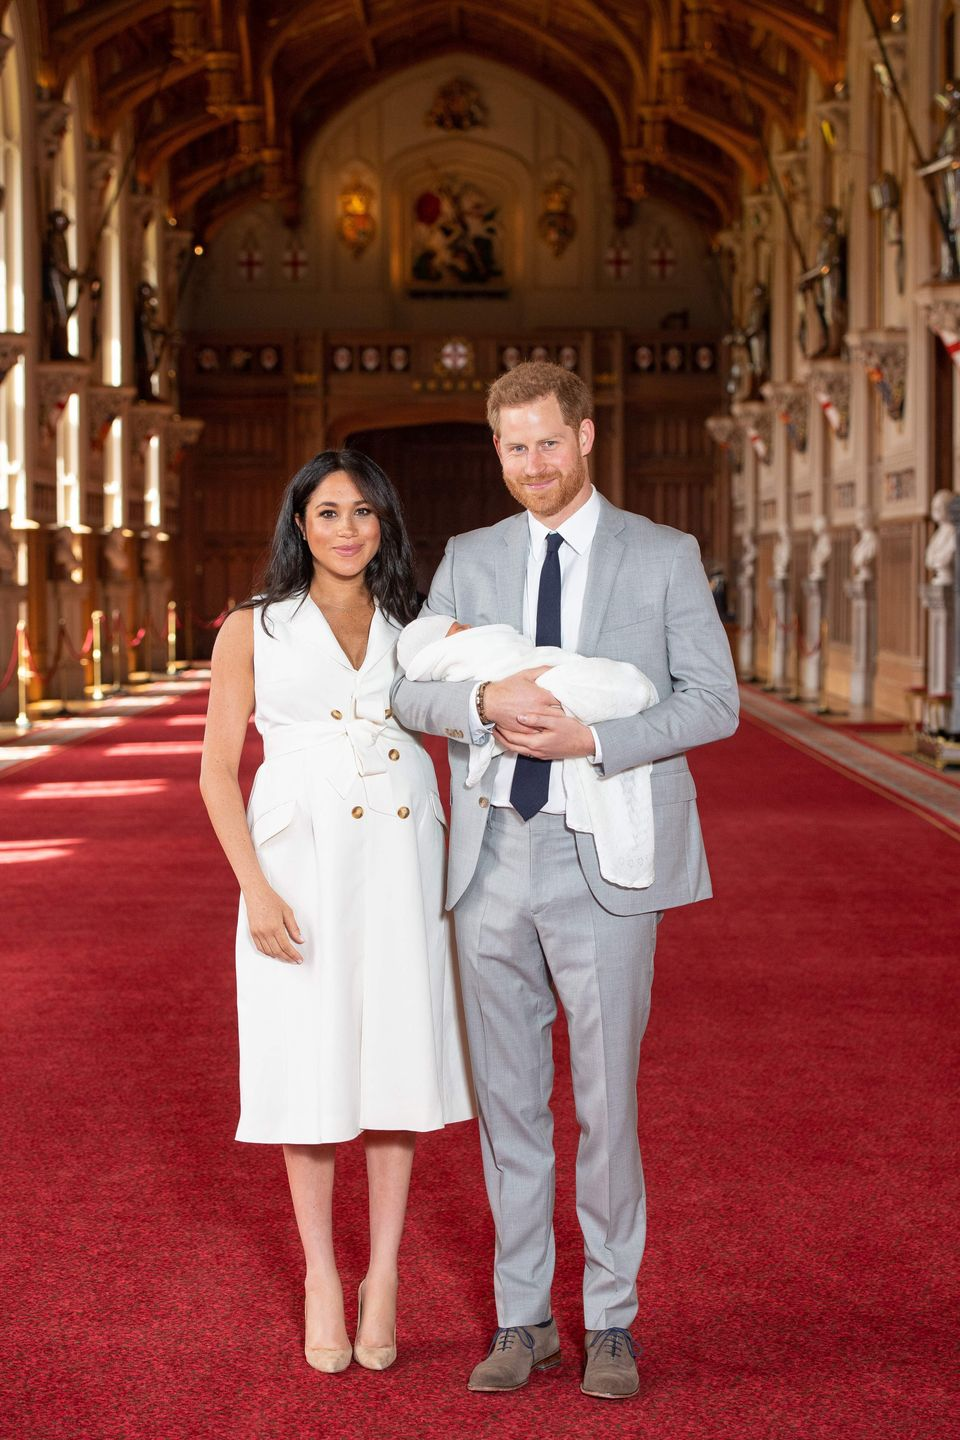 Prince Harry and the Duchess of Sussex pose for a photo with their newborn baby son, Archie Harrison Mountbatten-Windsor, in